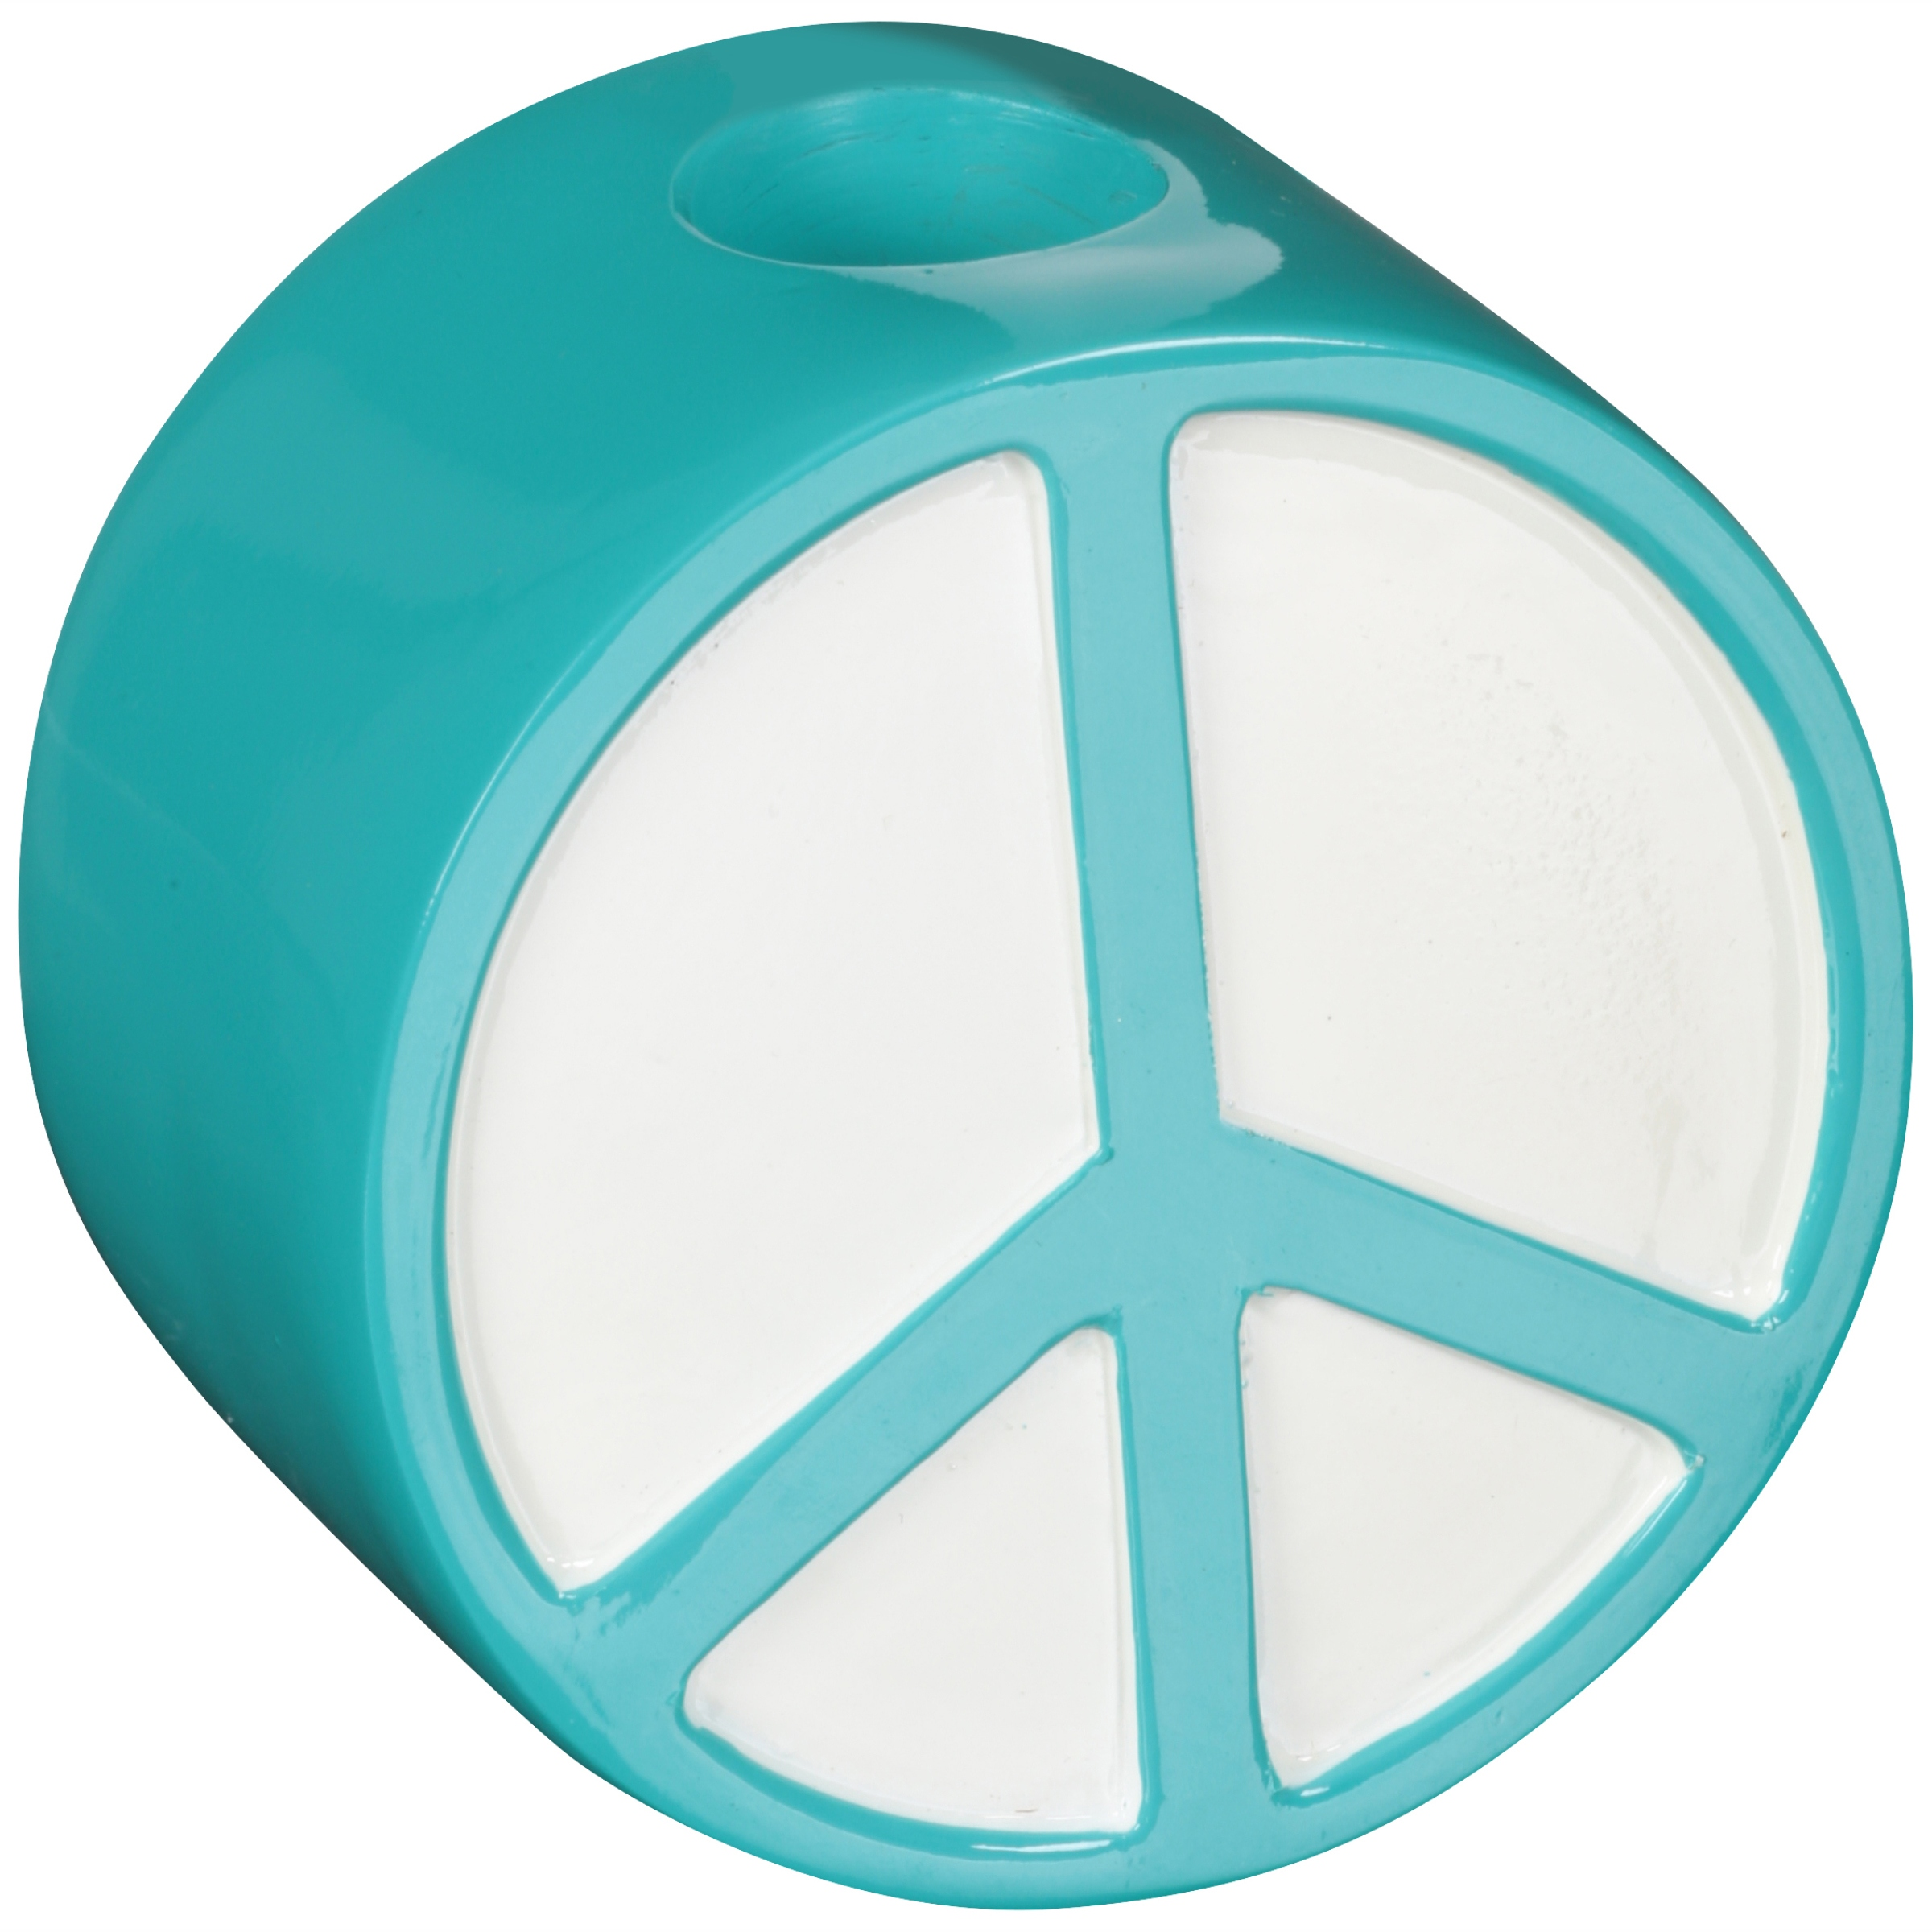 Challis & Roos™ World of Peace Toothbrush Holder